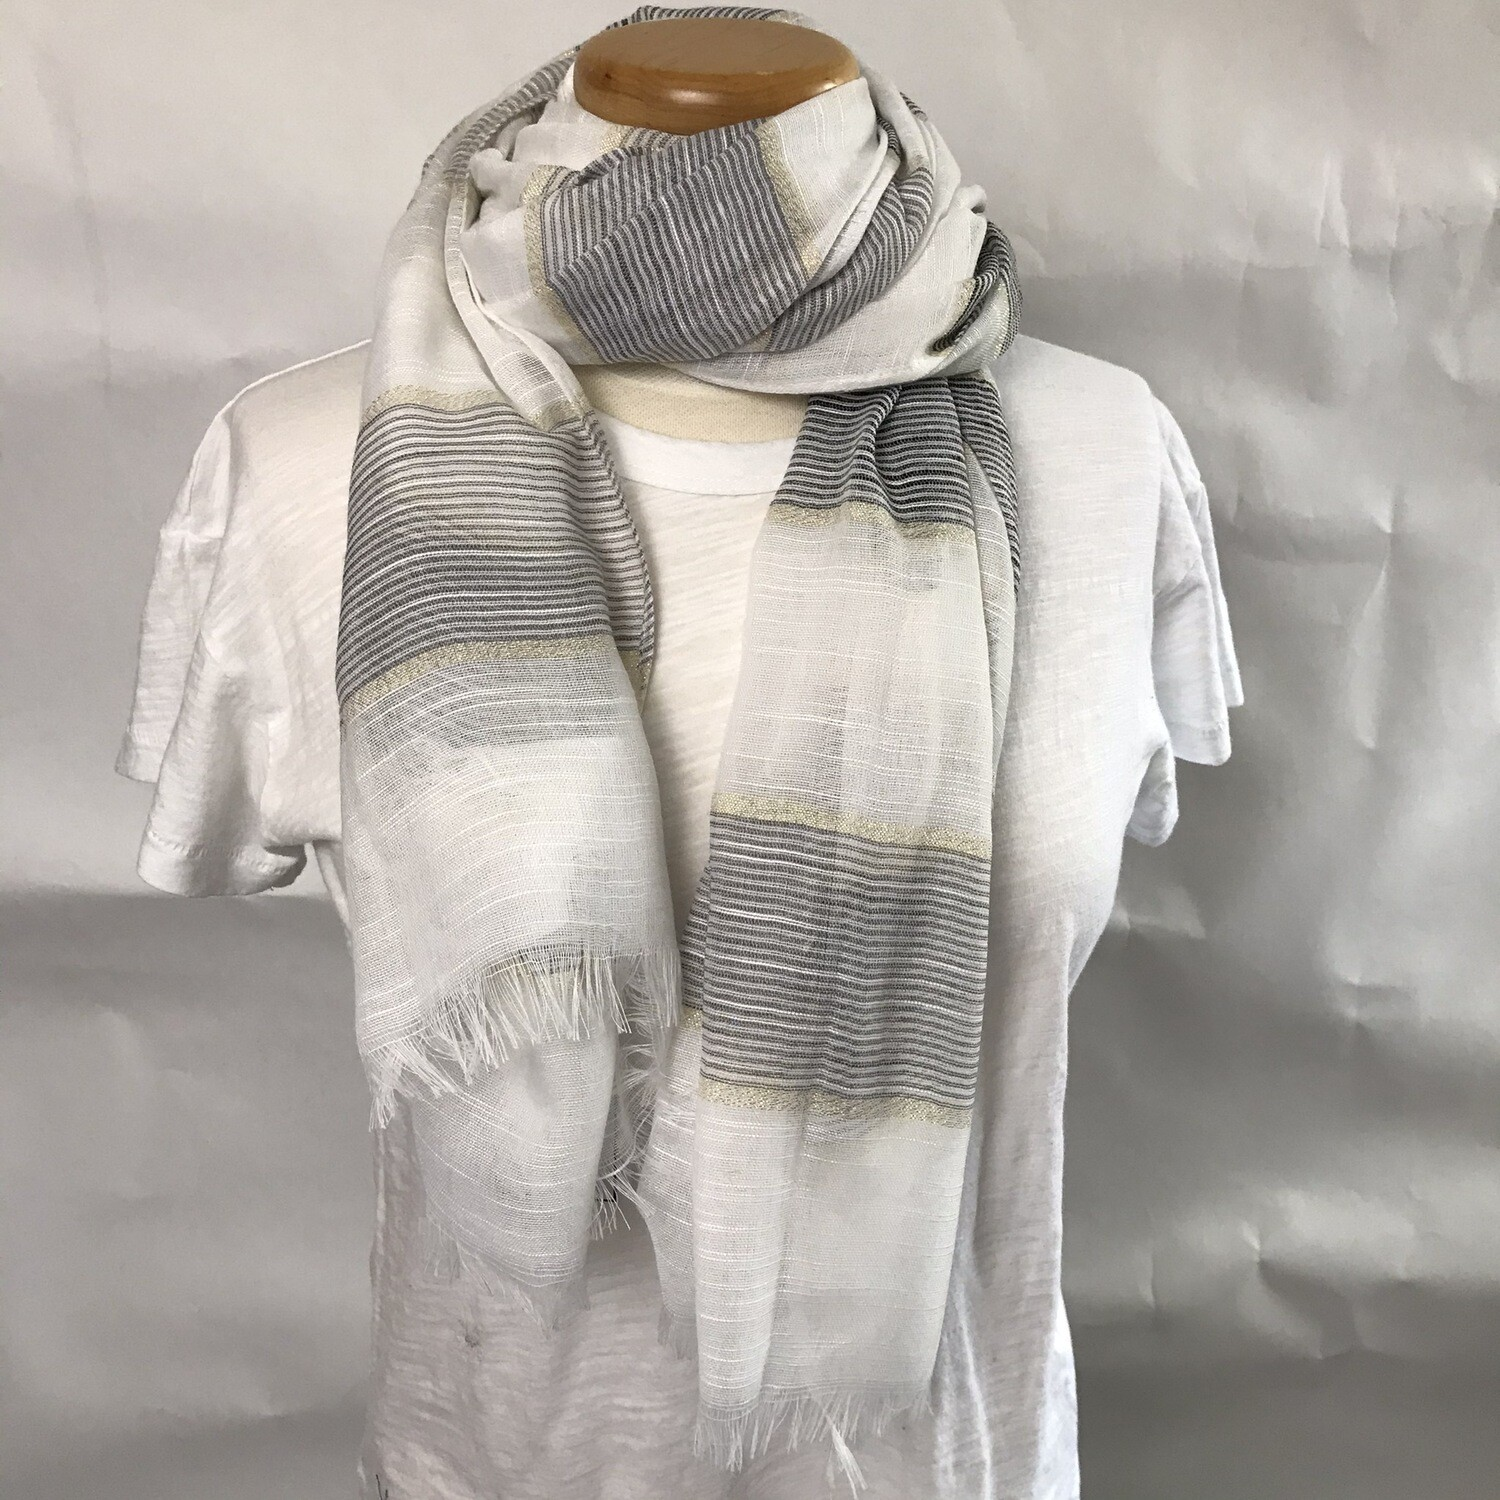 Scarf - White/Grey/Gold